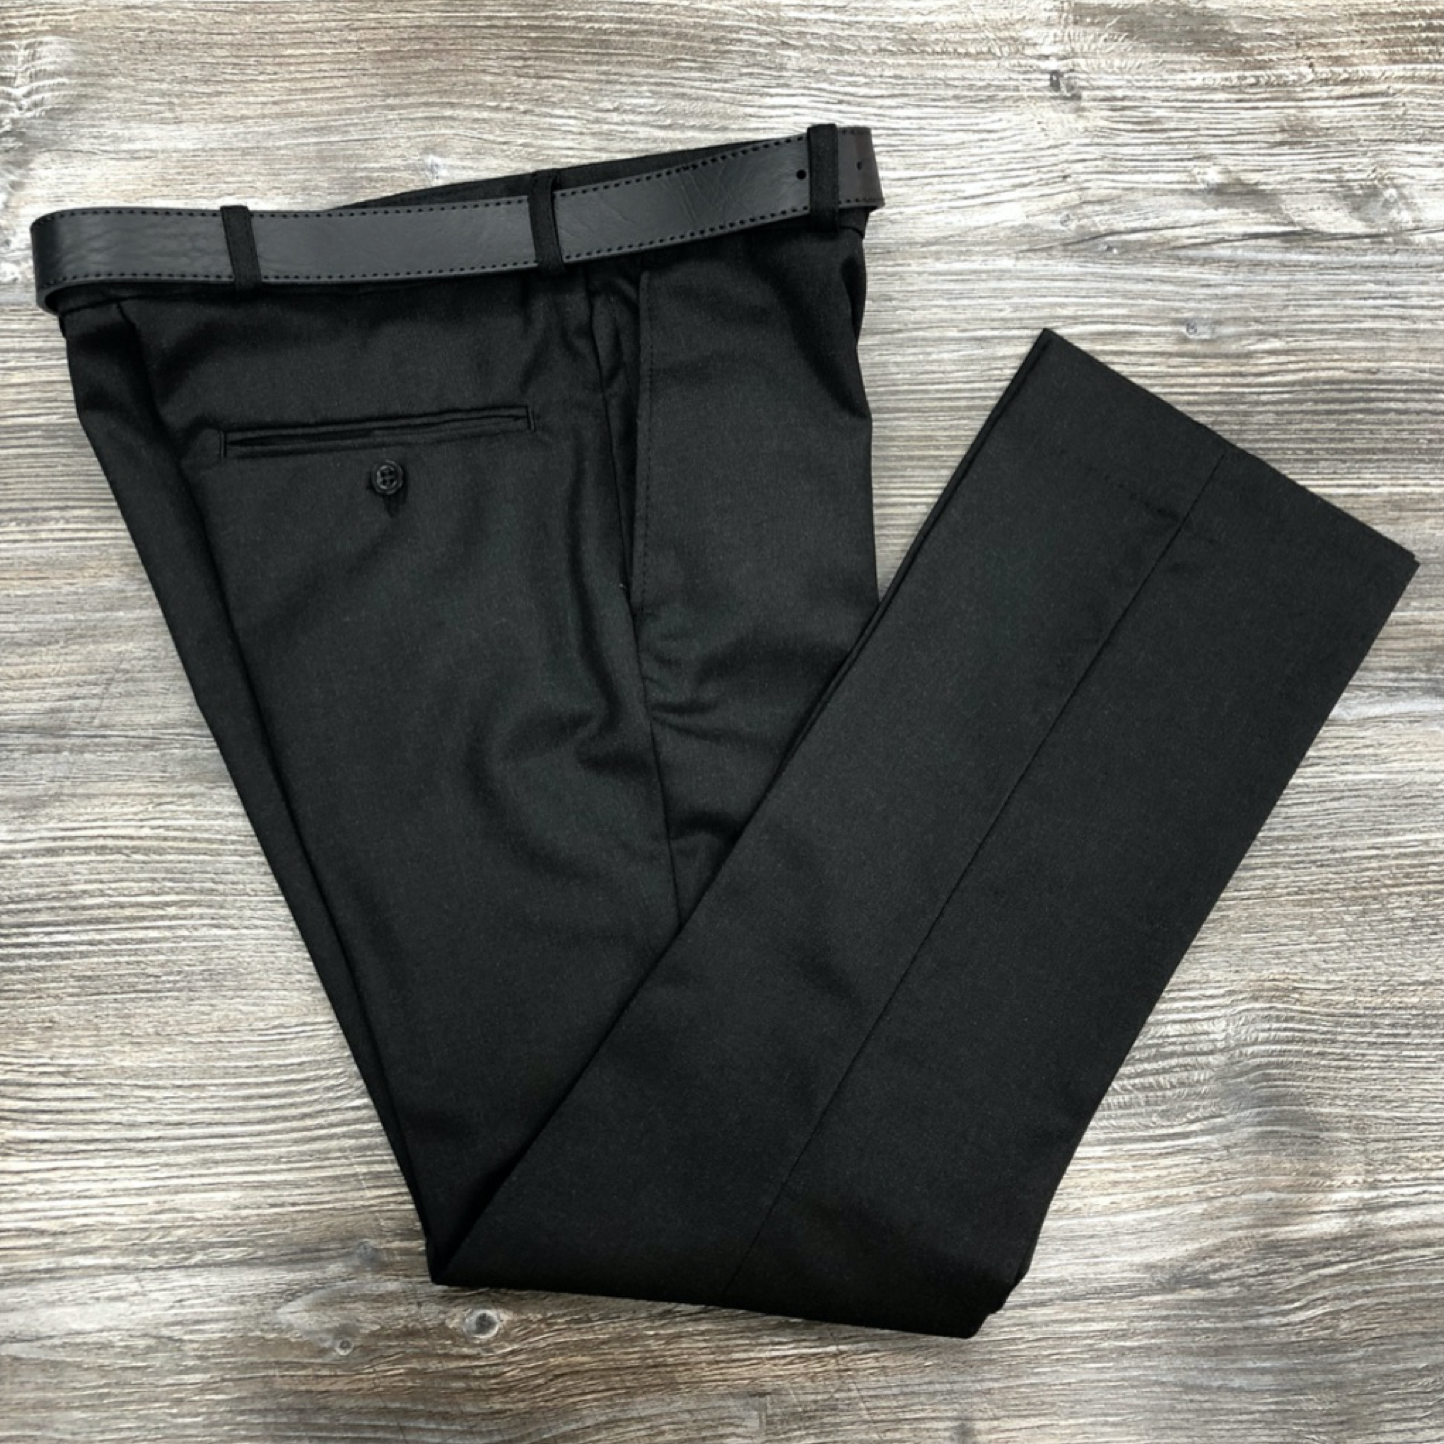 David Luke Charcoal Senior Trousers